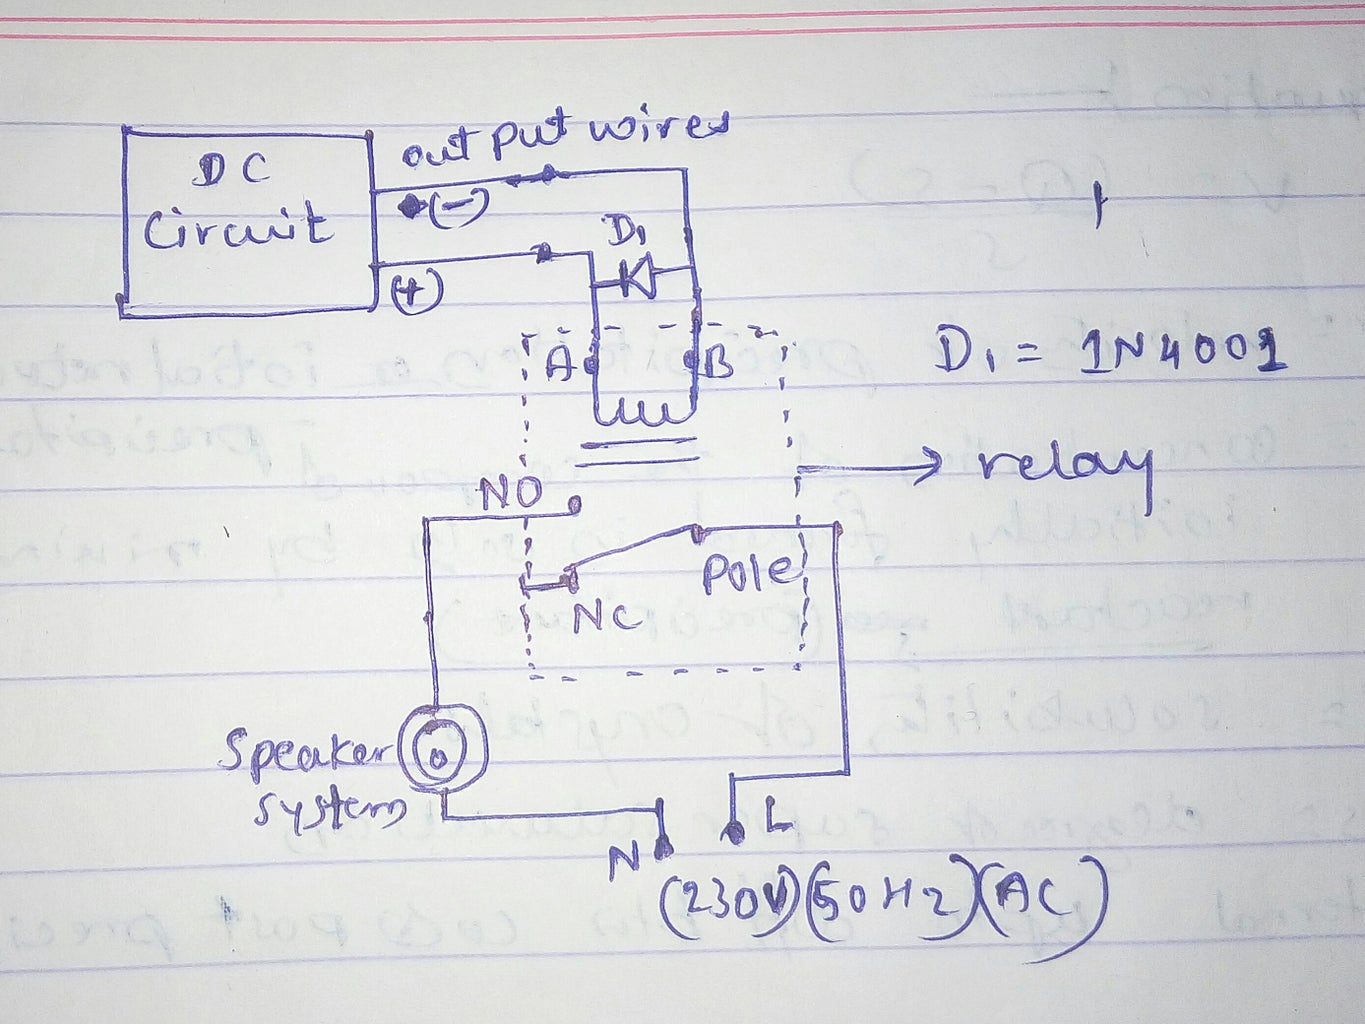 6) Connect the Circuit With Relay